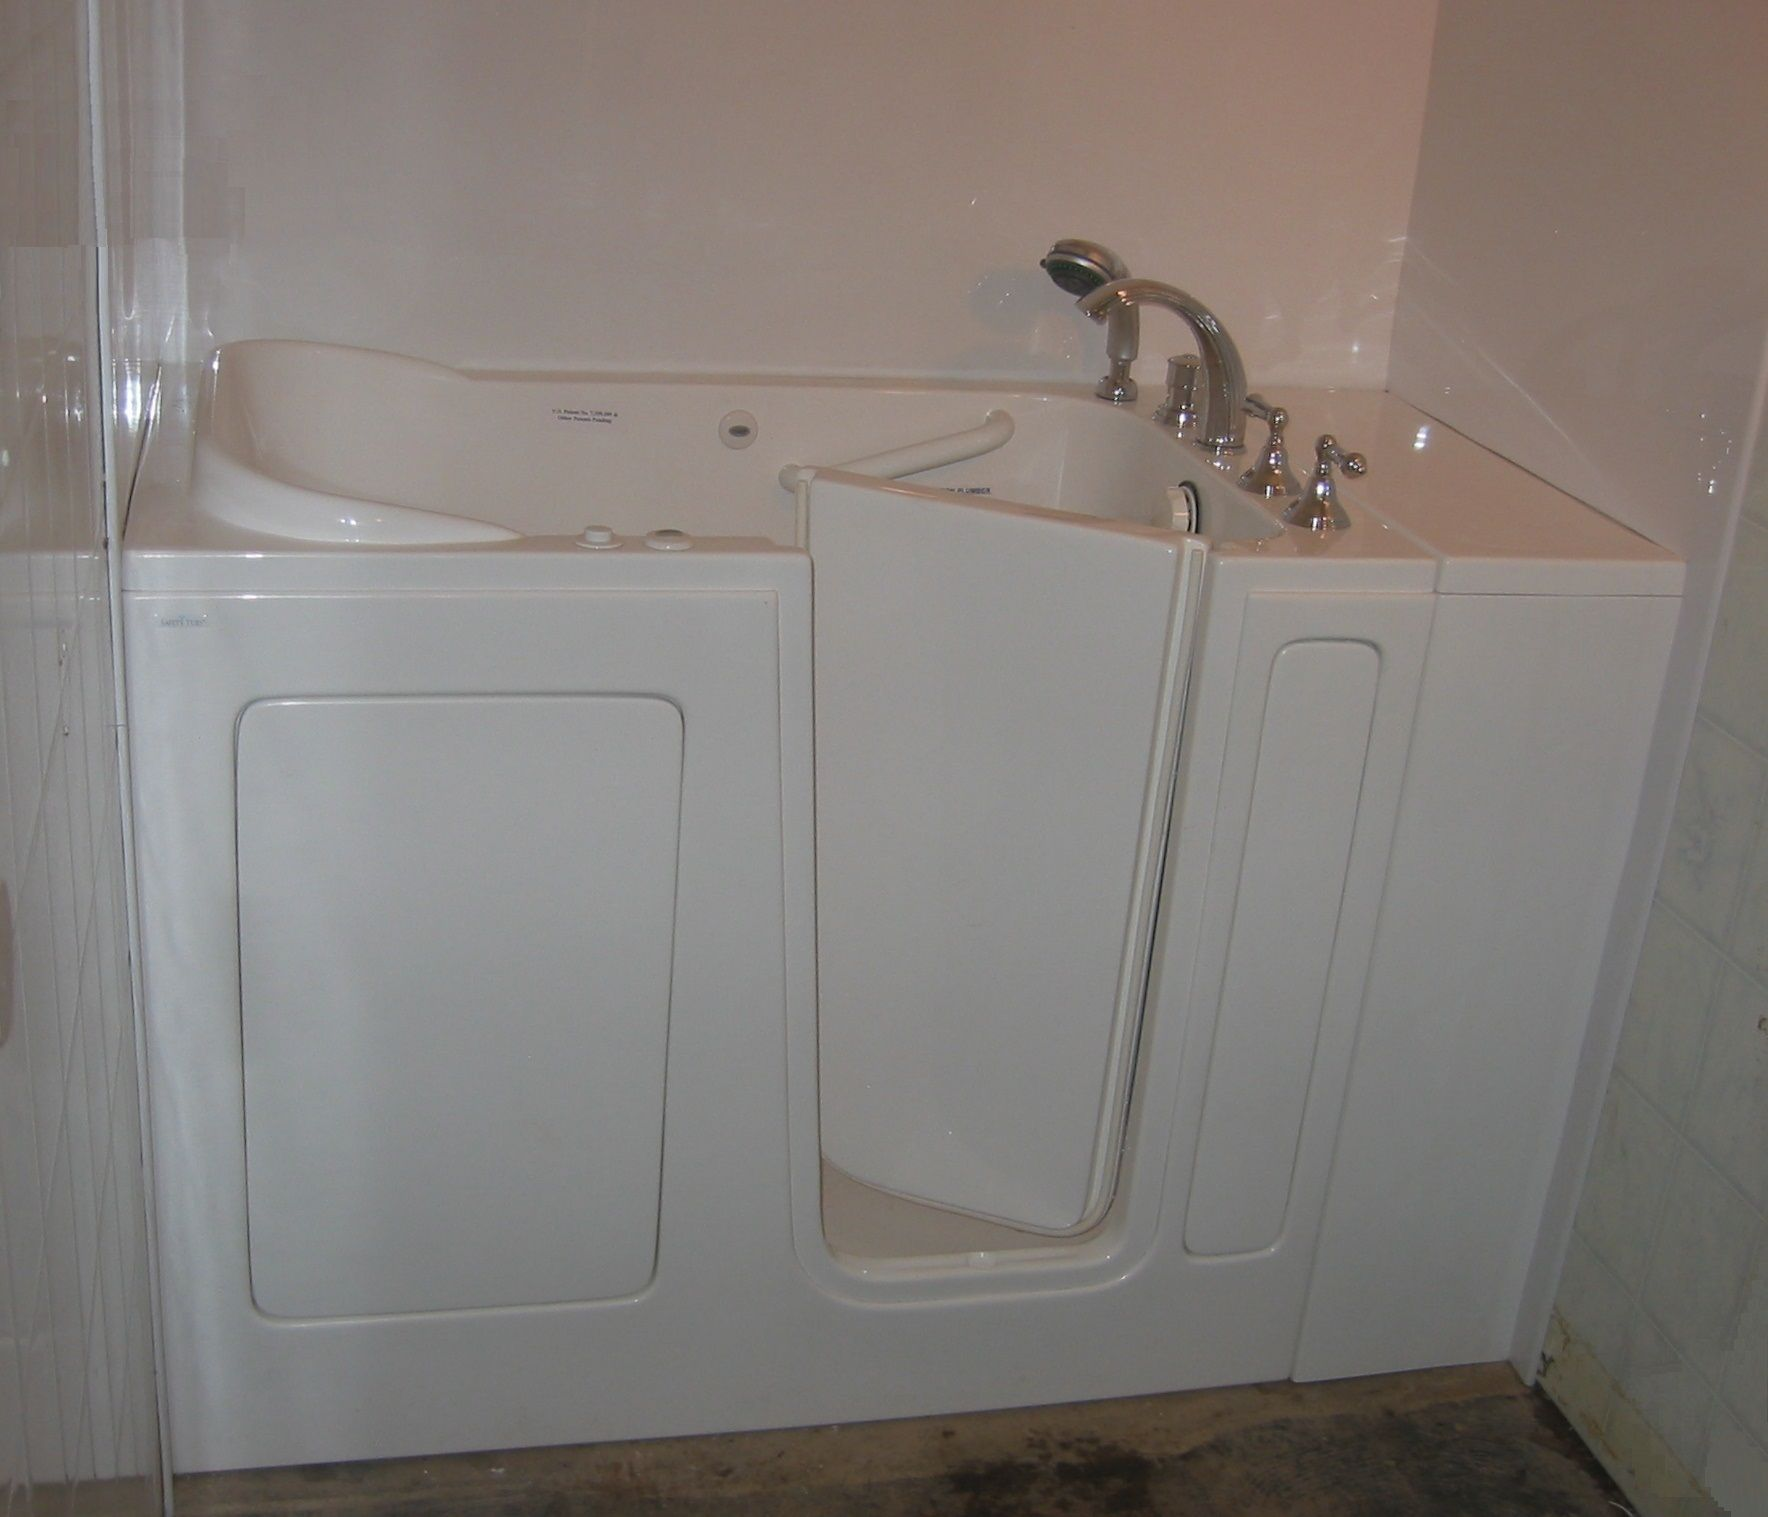 Bathroom Remodel Ideas Safety Tub Httpwwwhagenfirstcom - Residential bathroom remodeling